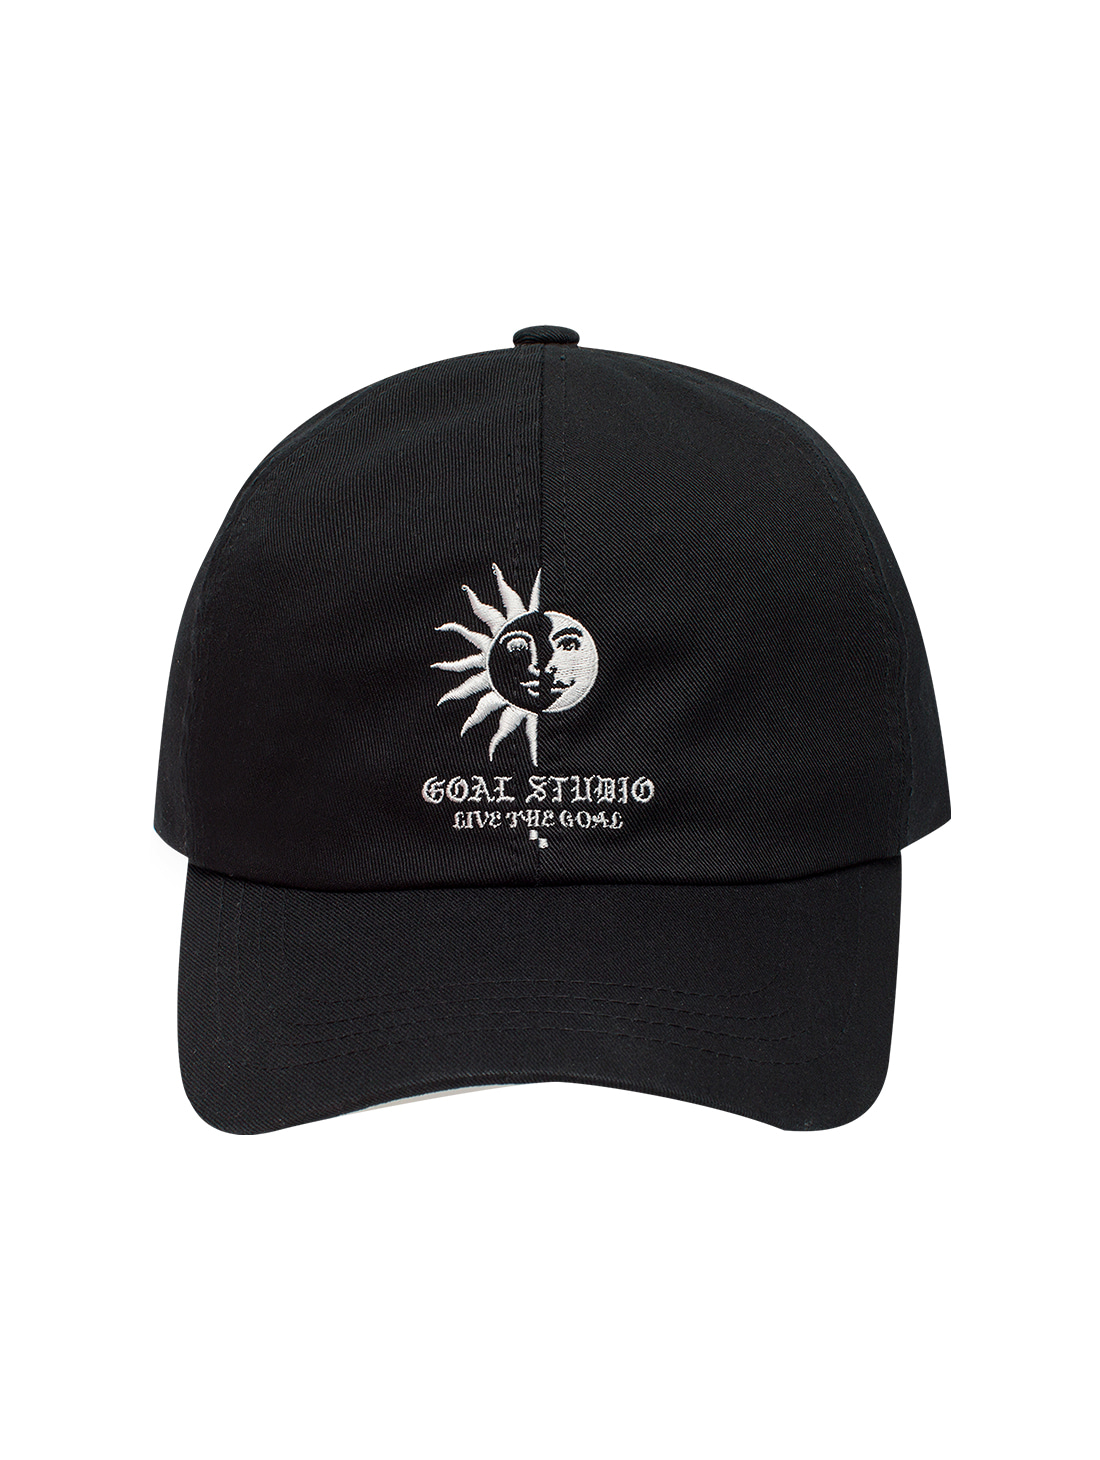 MC BALL CAP - BLACK